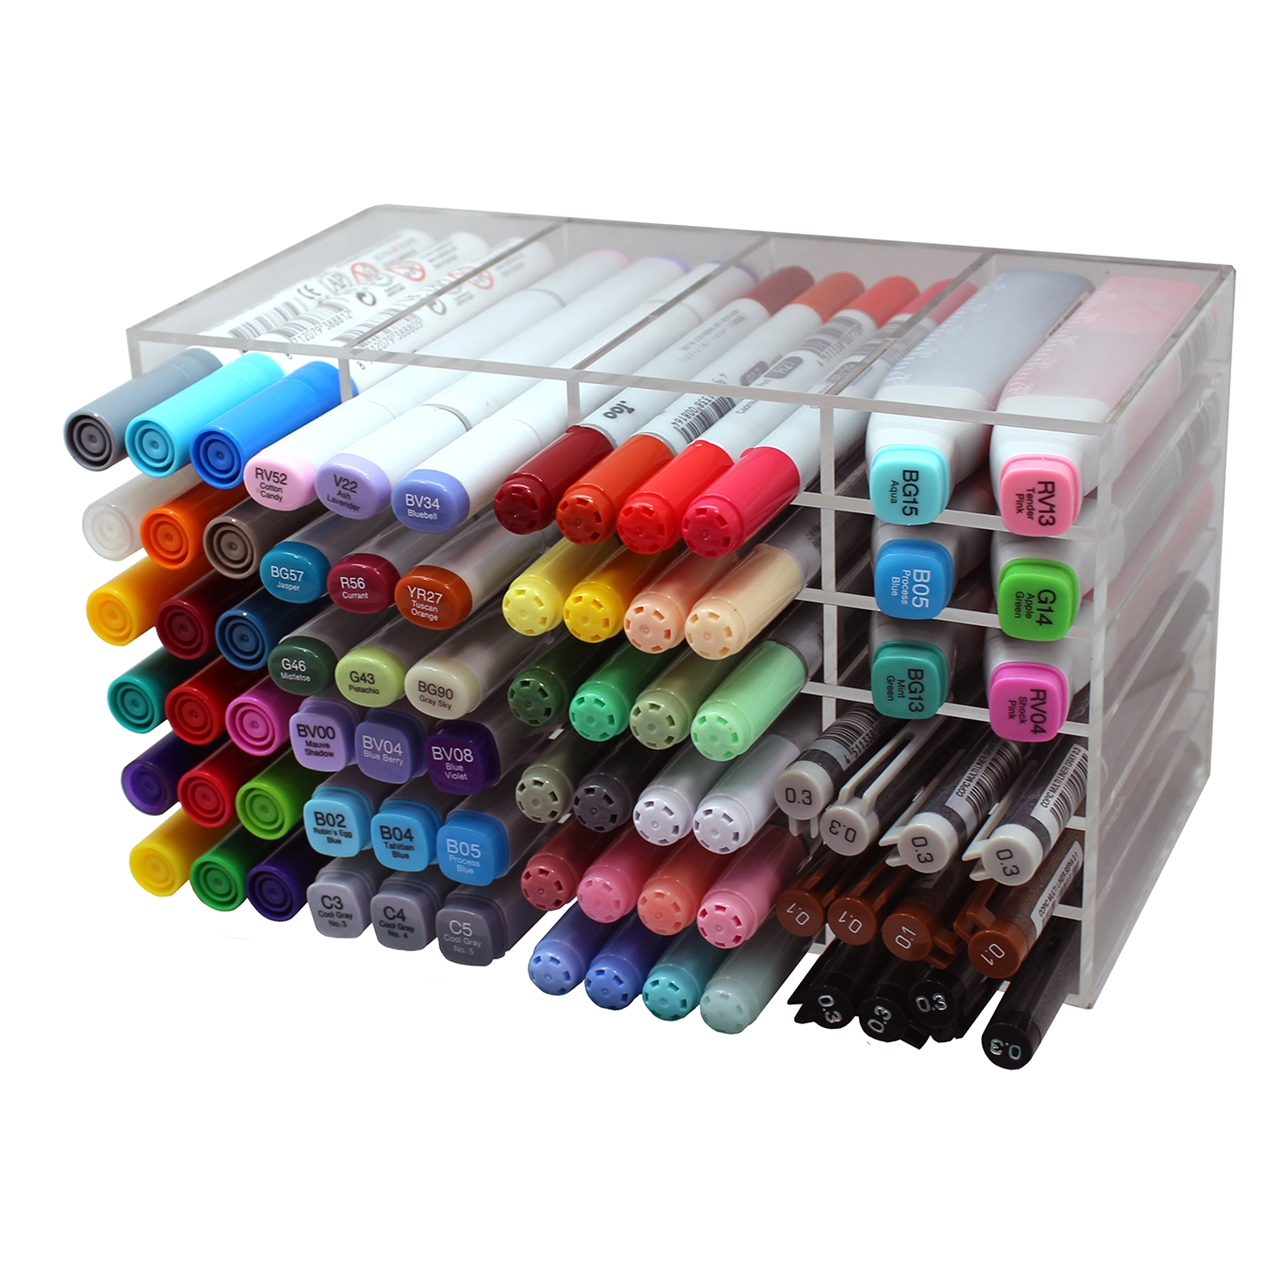 0021510_x-press-it-marker-storage-holder